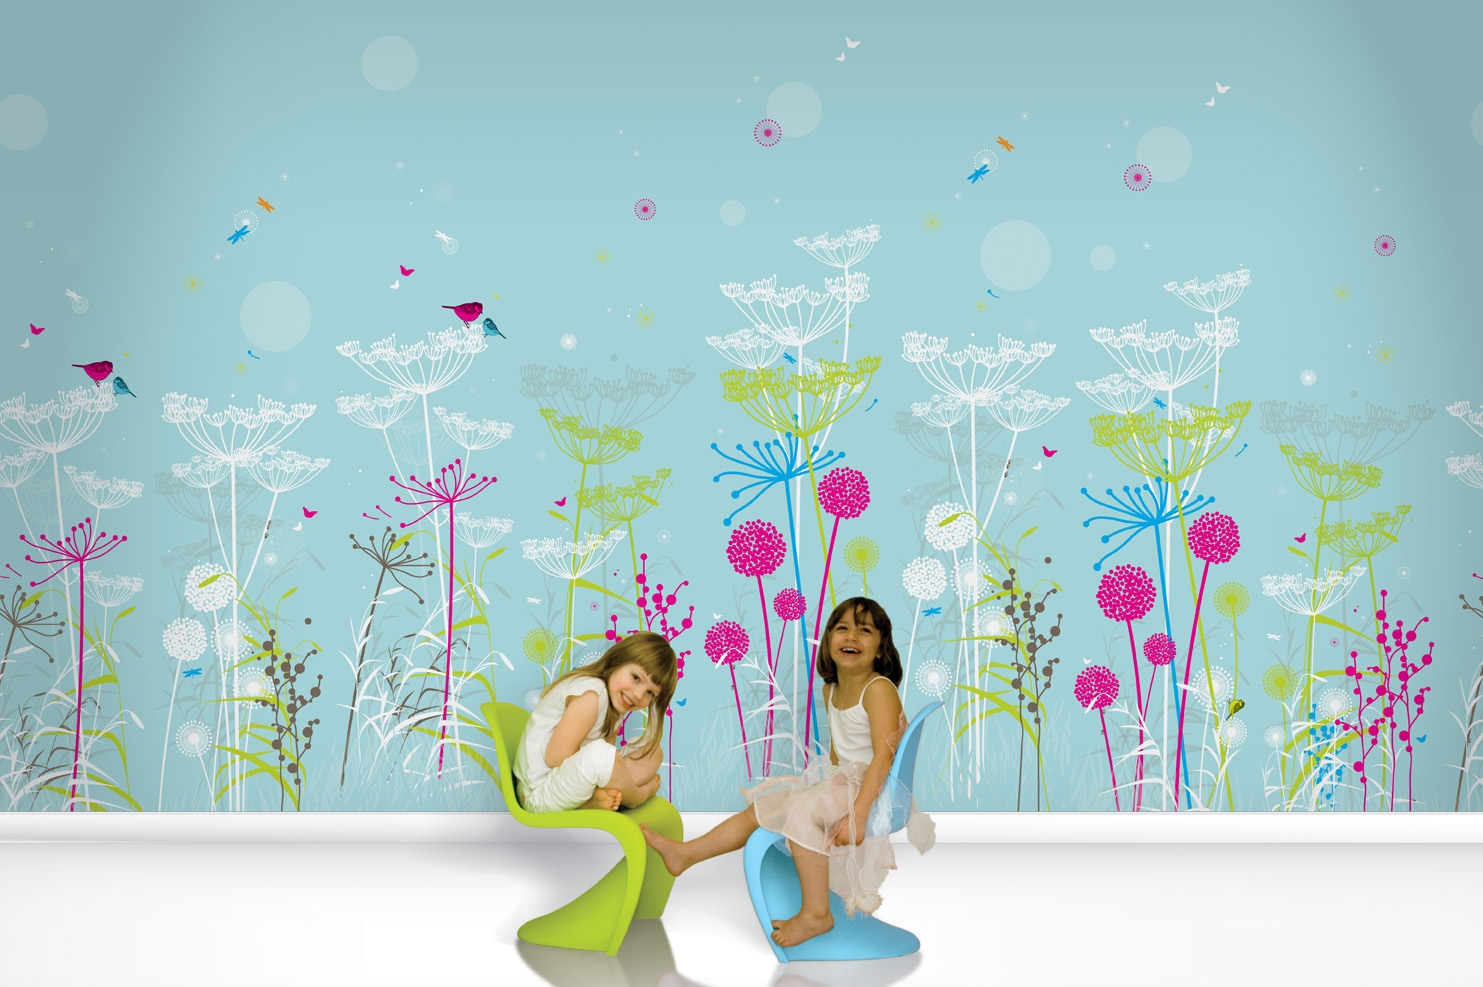 24 kids wallpapers images pictures design trends for Children room mural